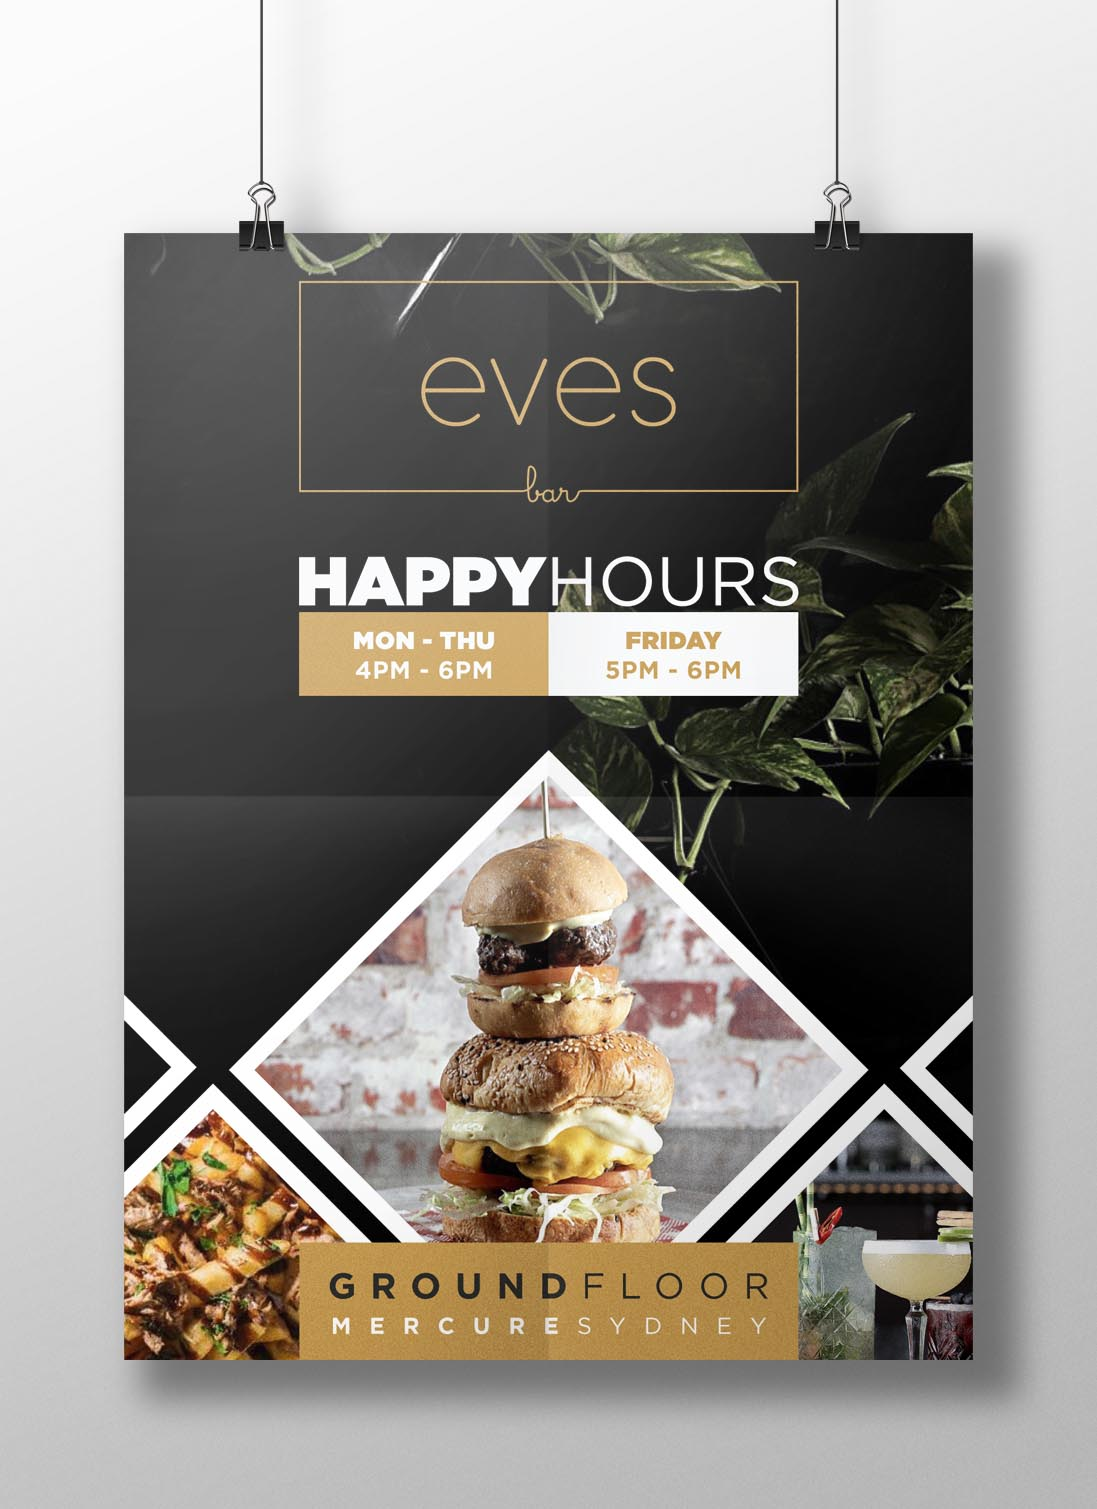 Eve's Bar Happy Hour